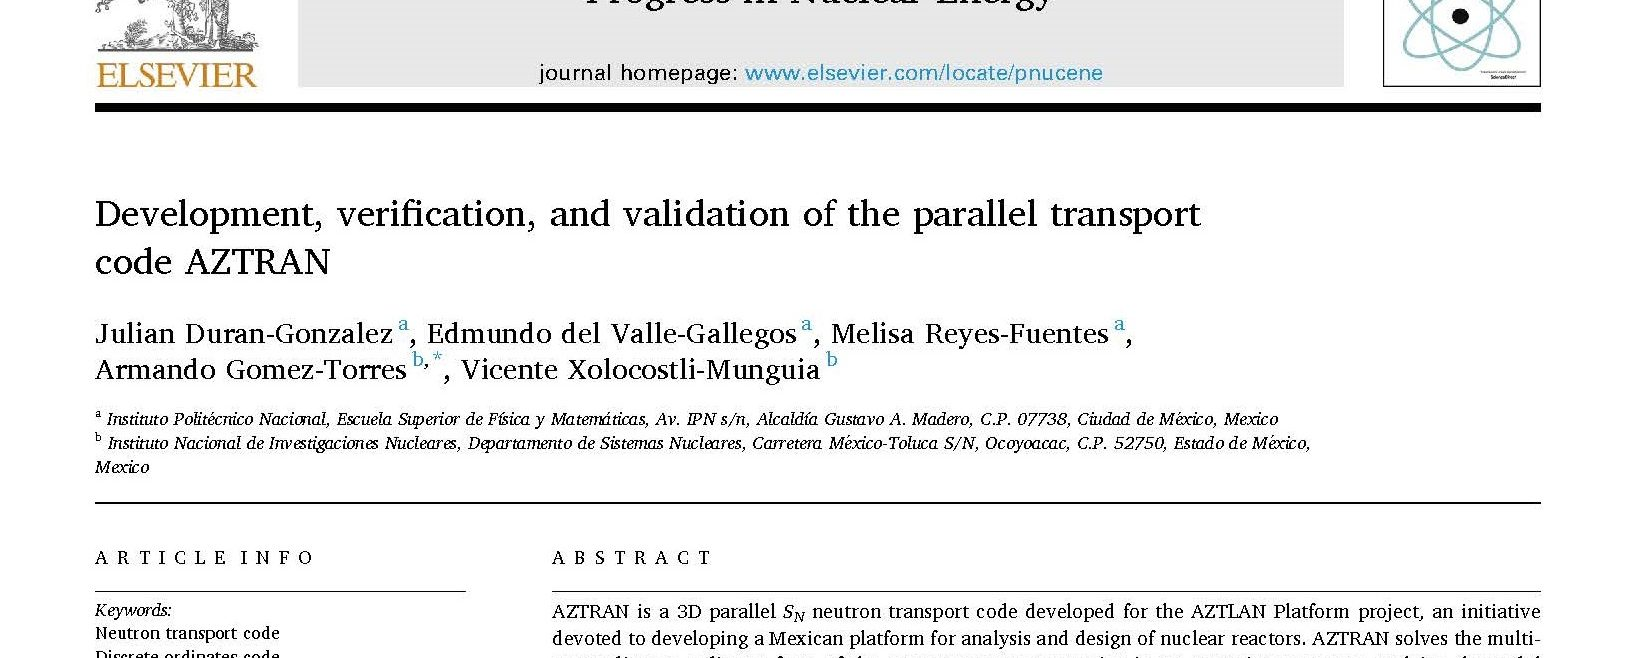 Development, verification, and validation of the parallel transport code AZTRAN